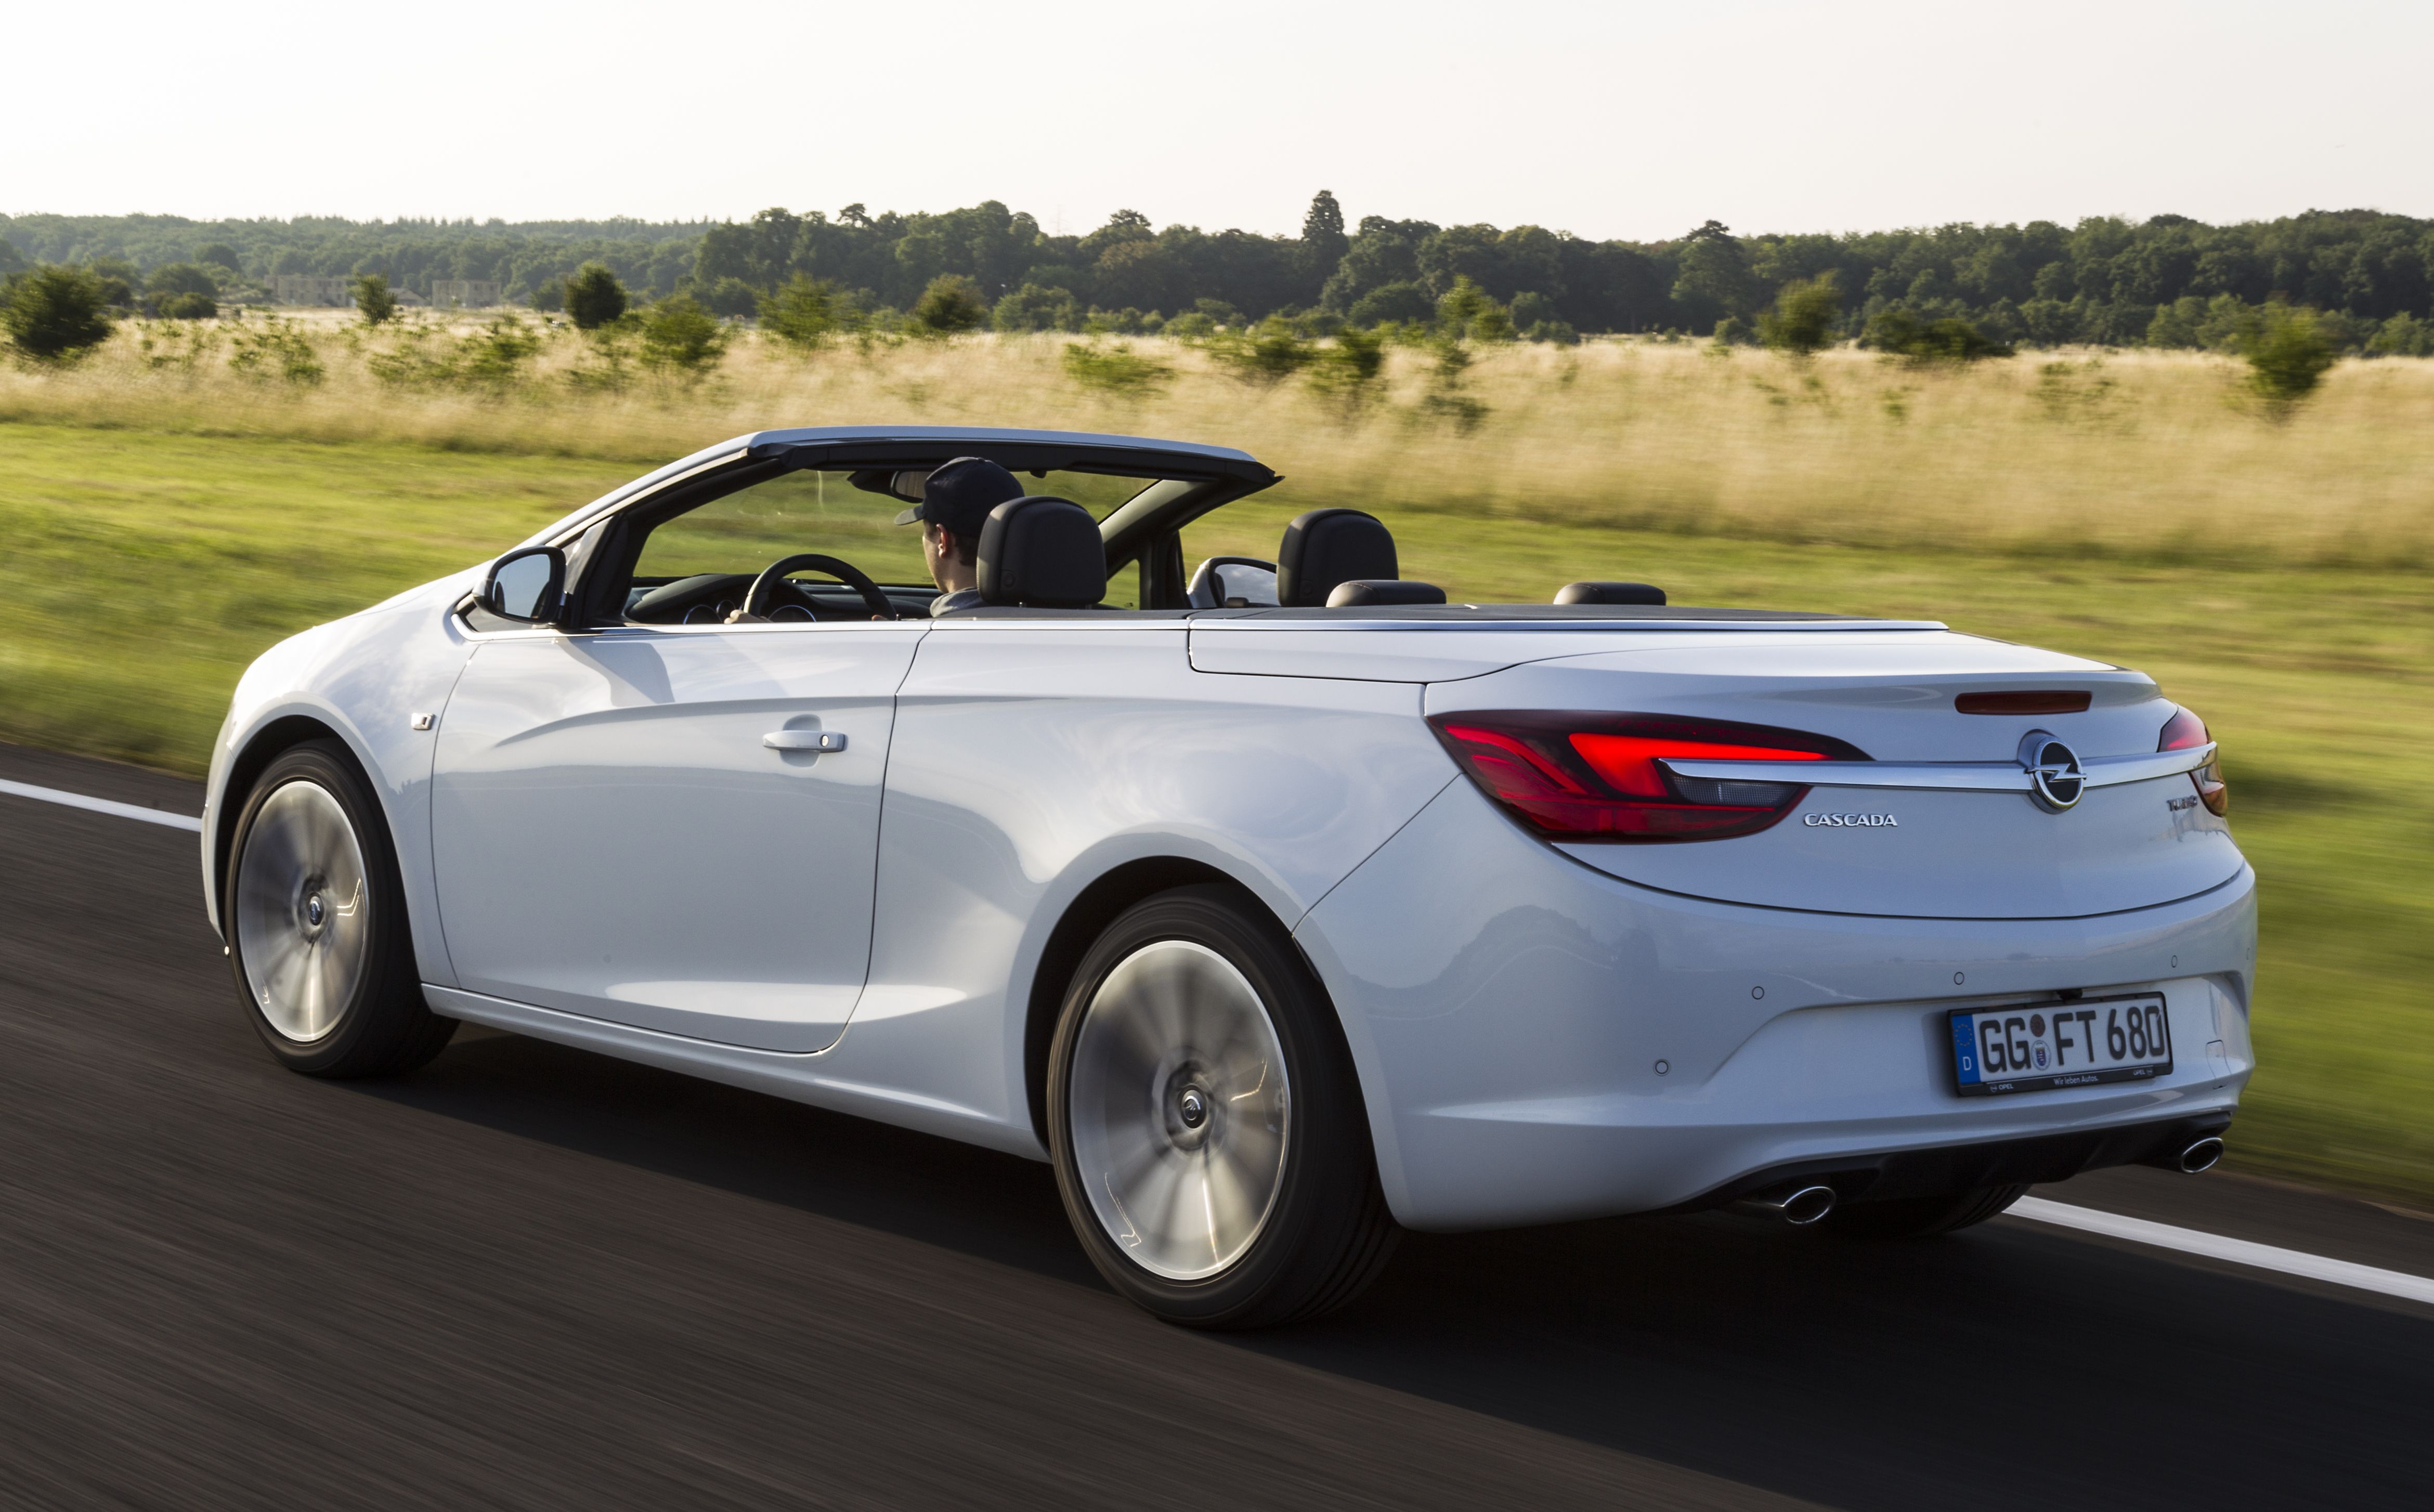 Buick Cascada Convertible Confirmed For U S The News Wheel Buick Cascada Buick Opel